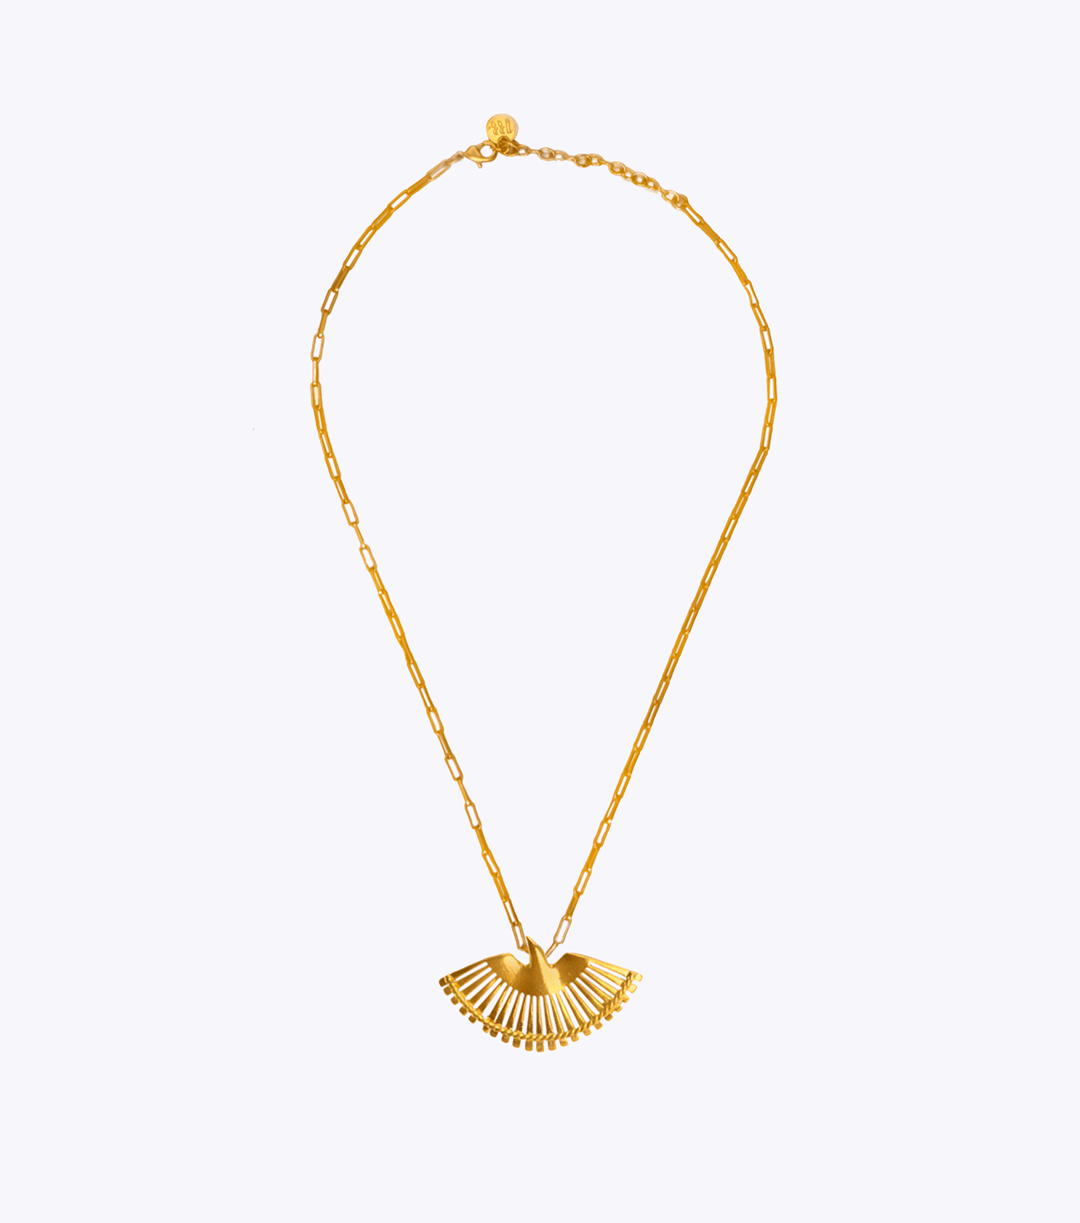 Fenix Oblong Chain Necklace